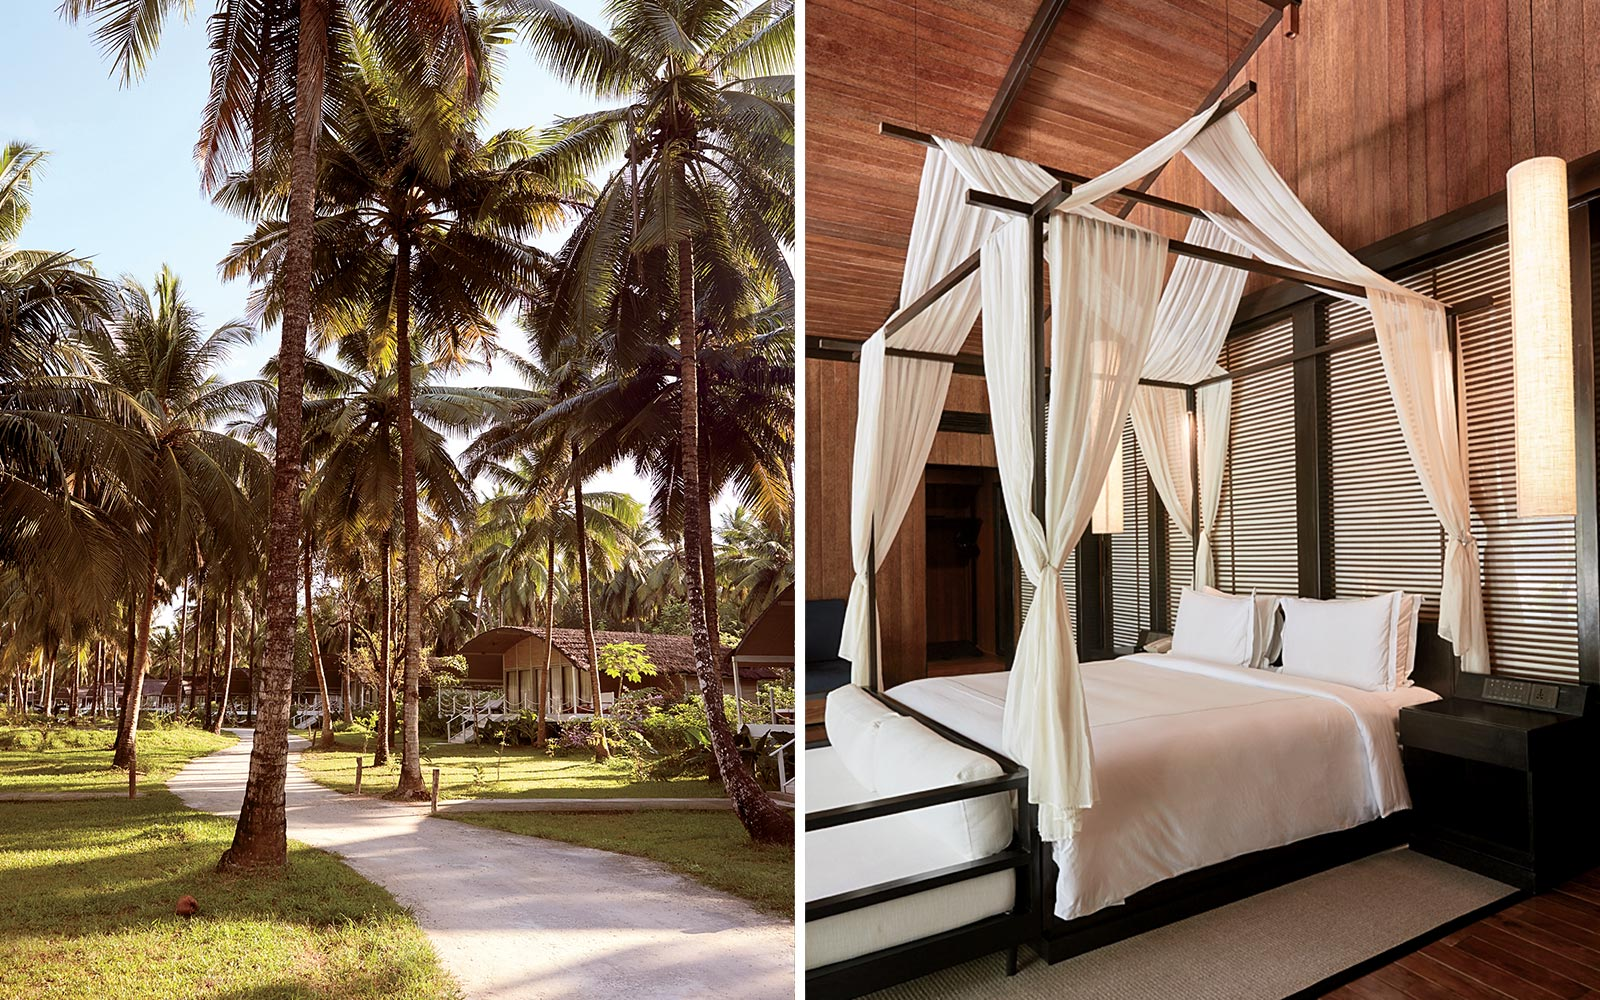 The Taj Exotica resort in the Andaman Islands